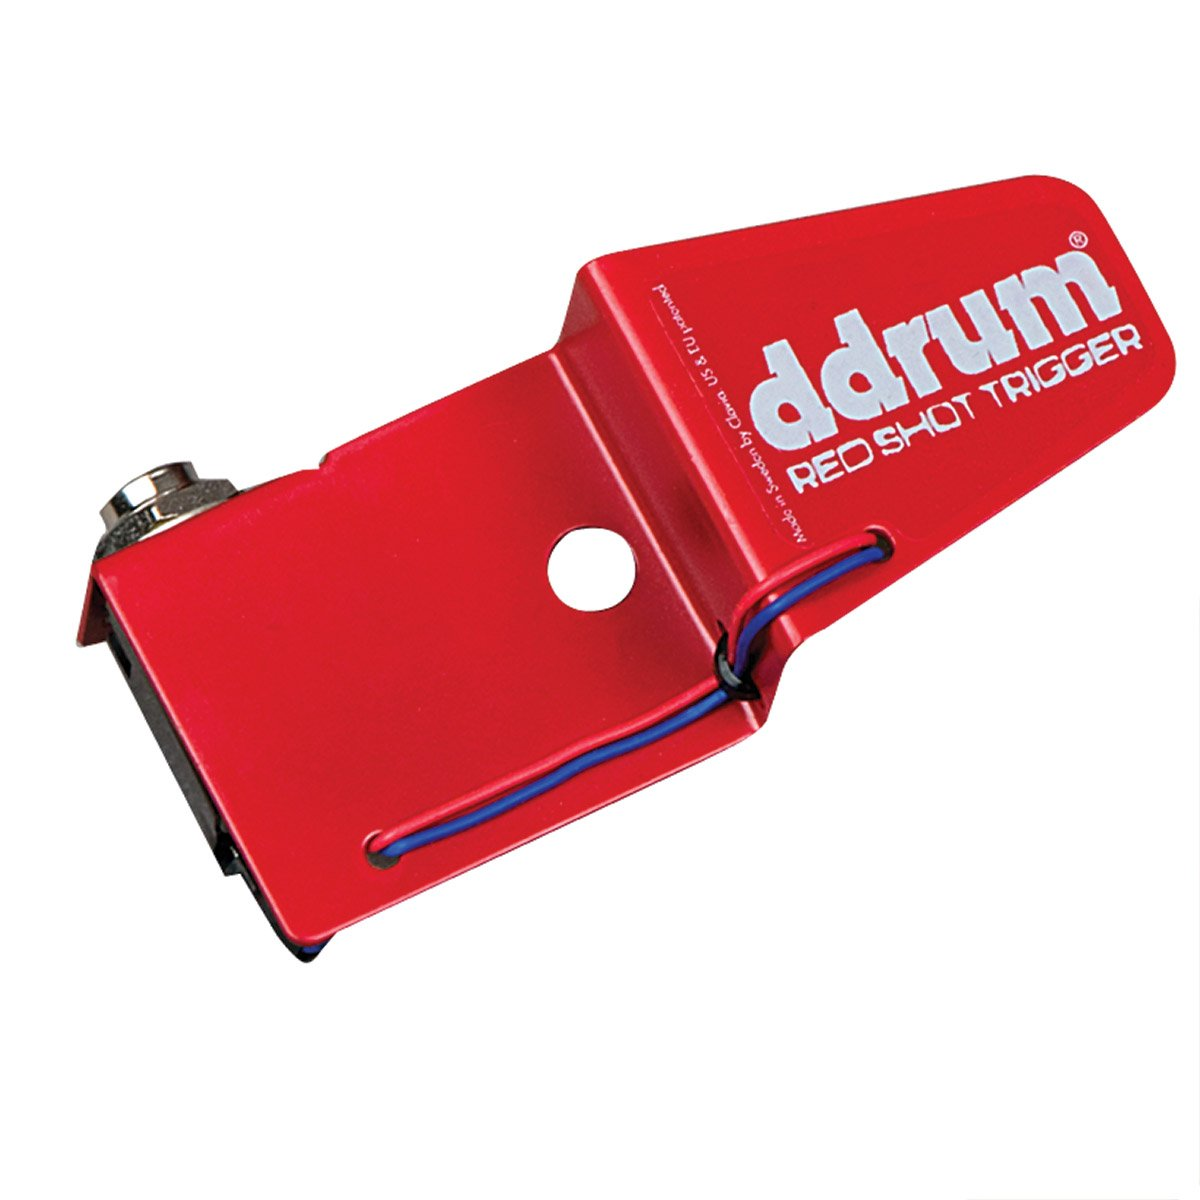 ddrum Red Shot Tom/Snare Drum Trigger by Ddrum